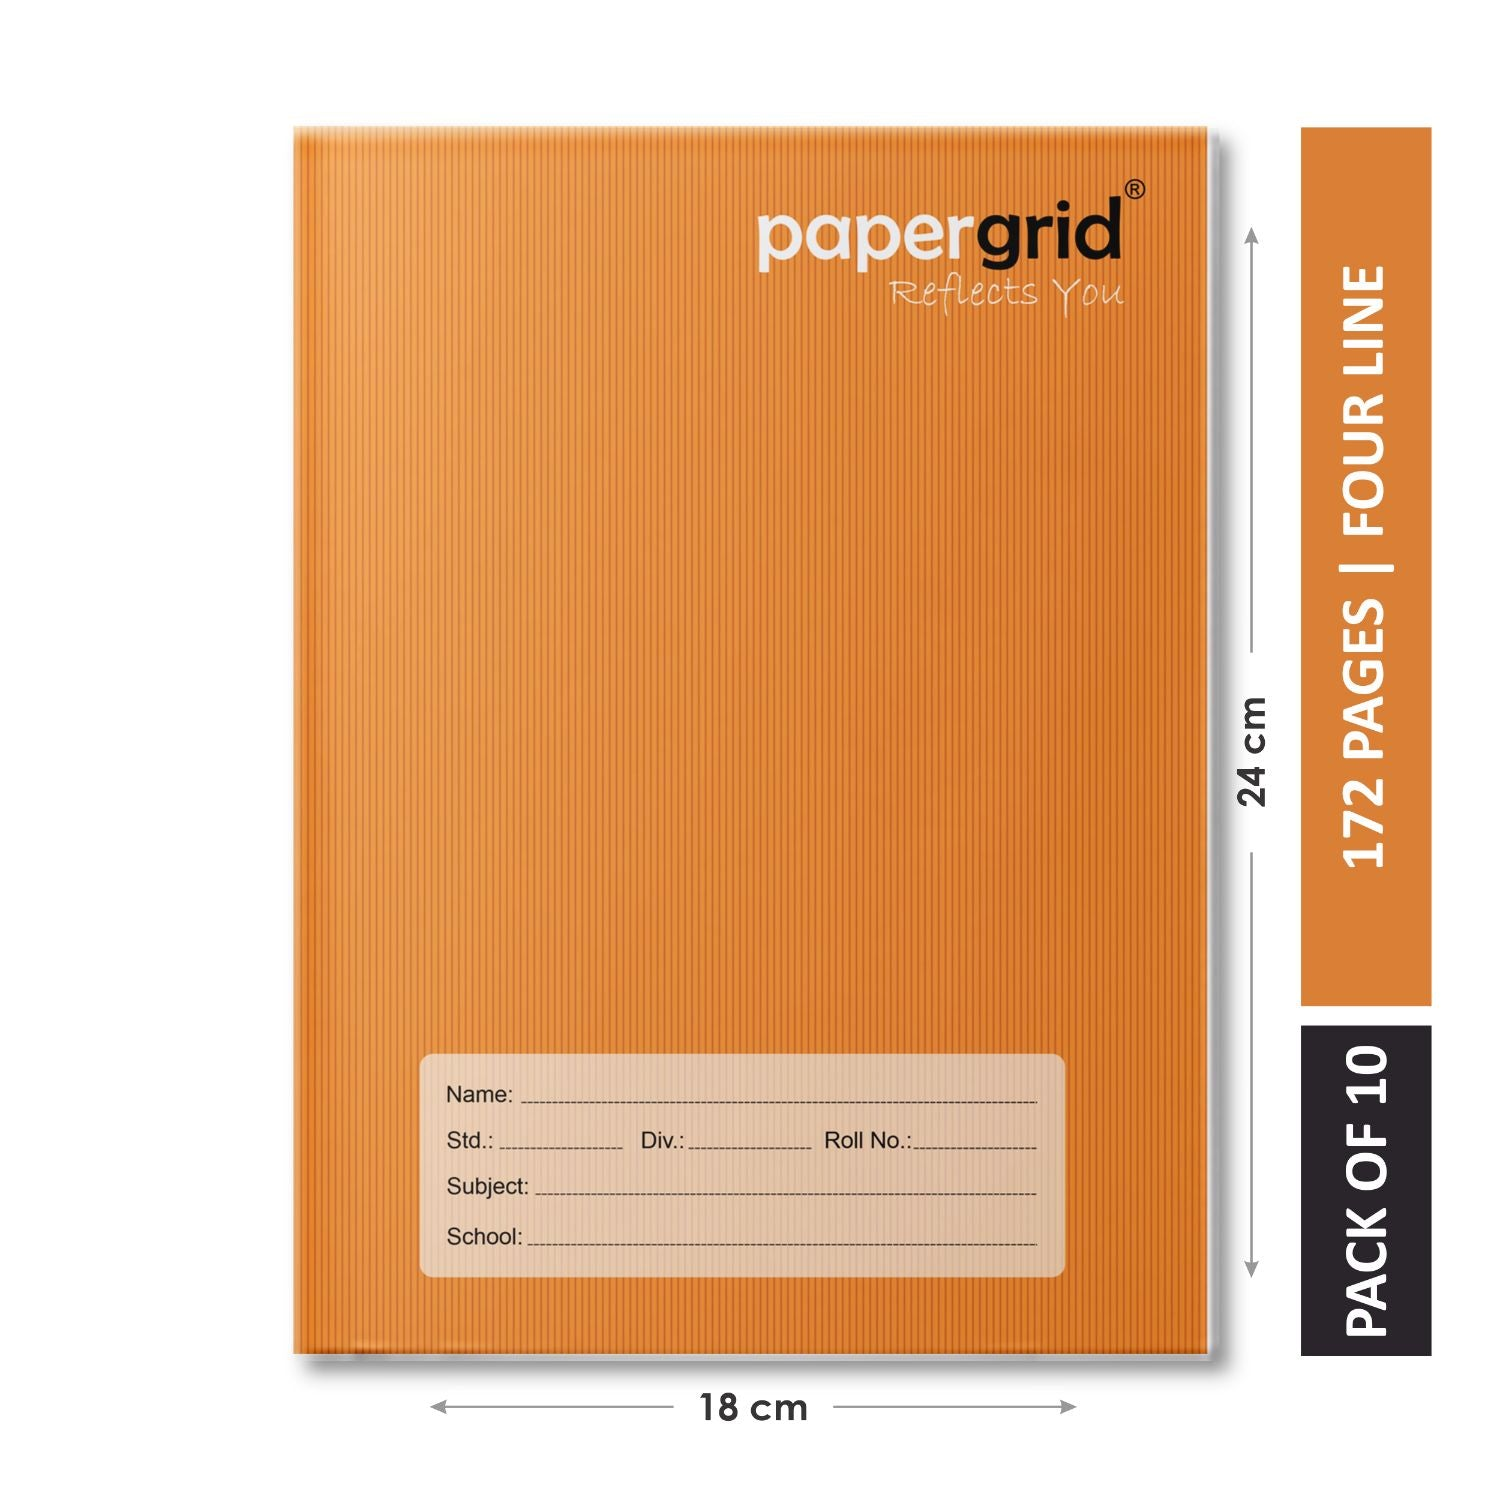 Papergrid Notebook - Brown Cover, King Size (24 cm x 18 cm), Four Line, 172 Pages, Soft Cover - Pack of 10